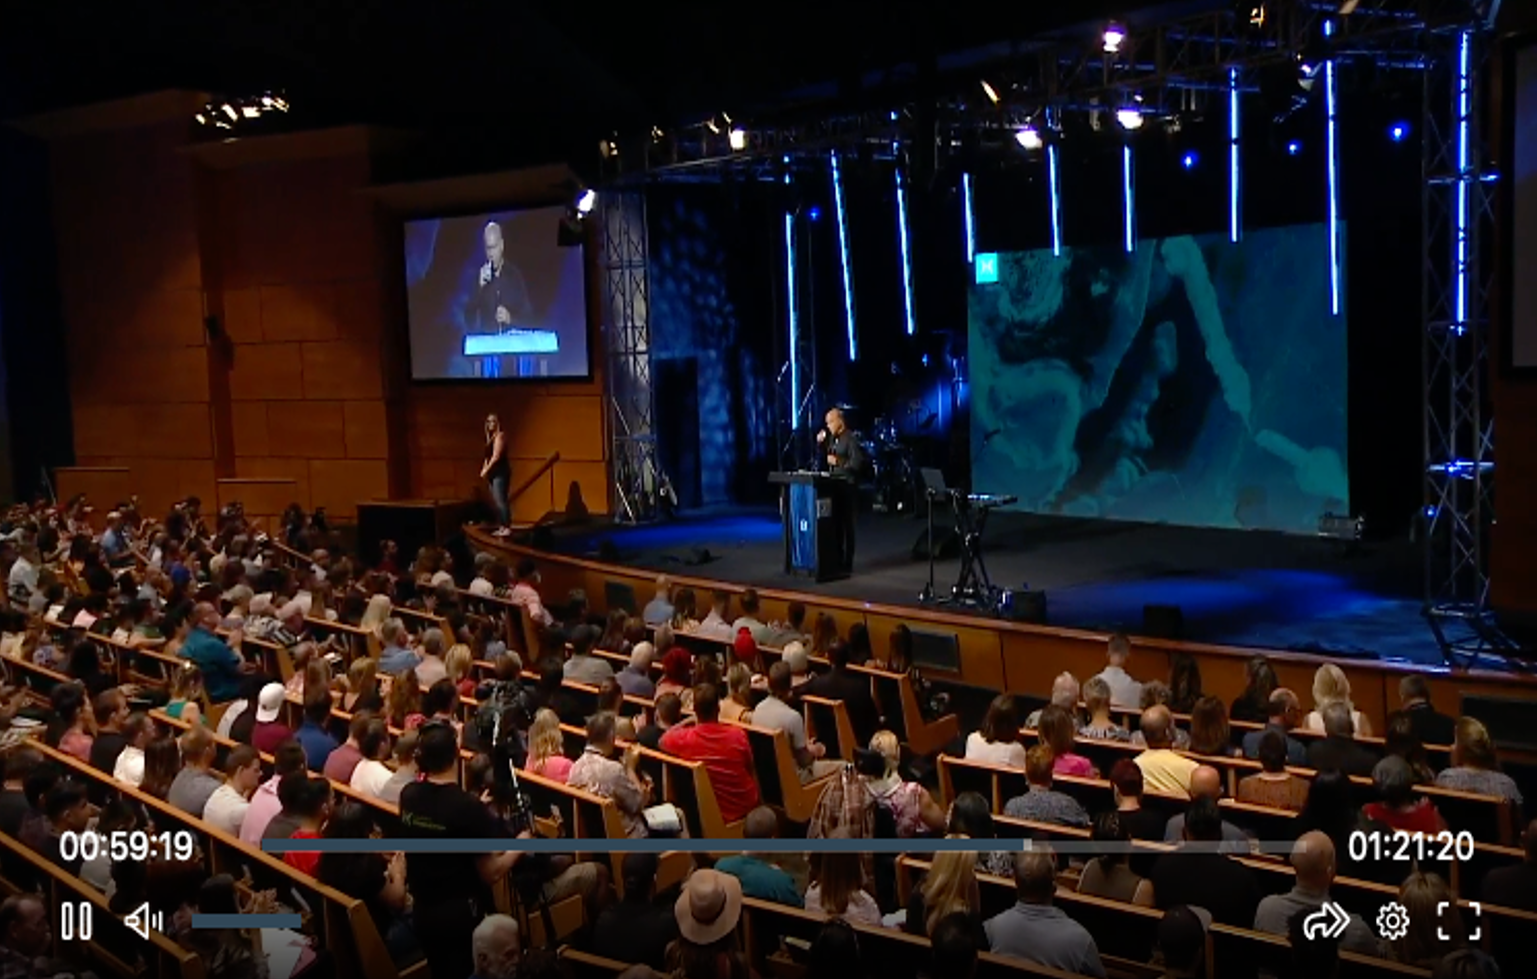 Screenshot of video broadcast from Harvest Christian Fellowship depicting a large audience enjoying a religious service.